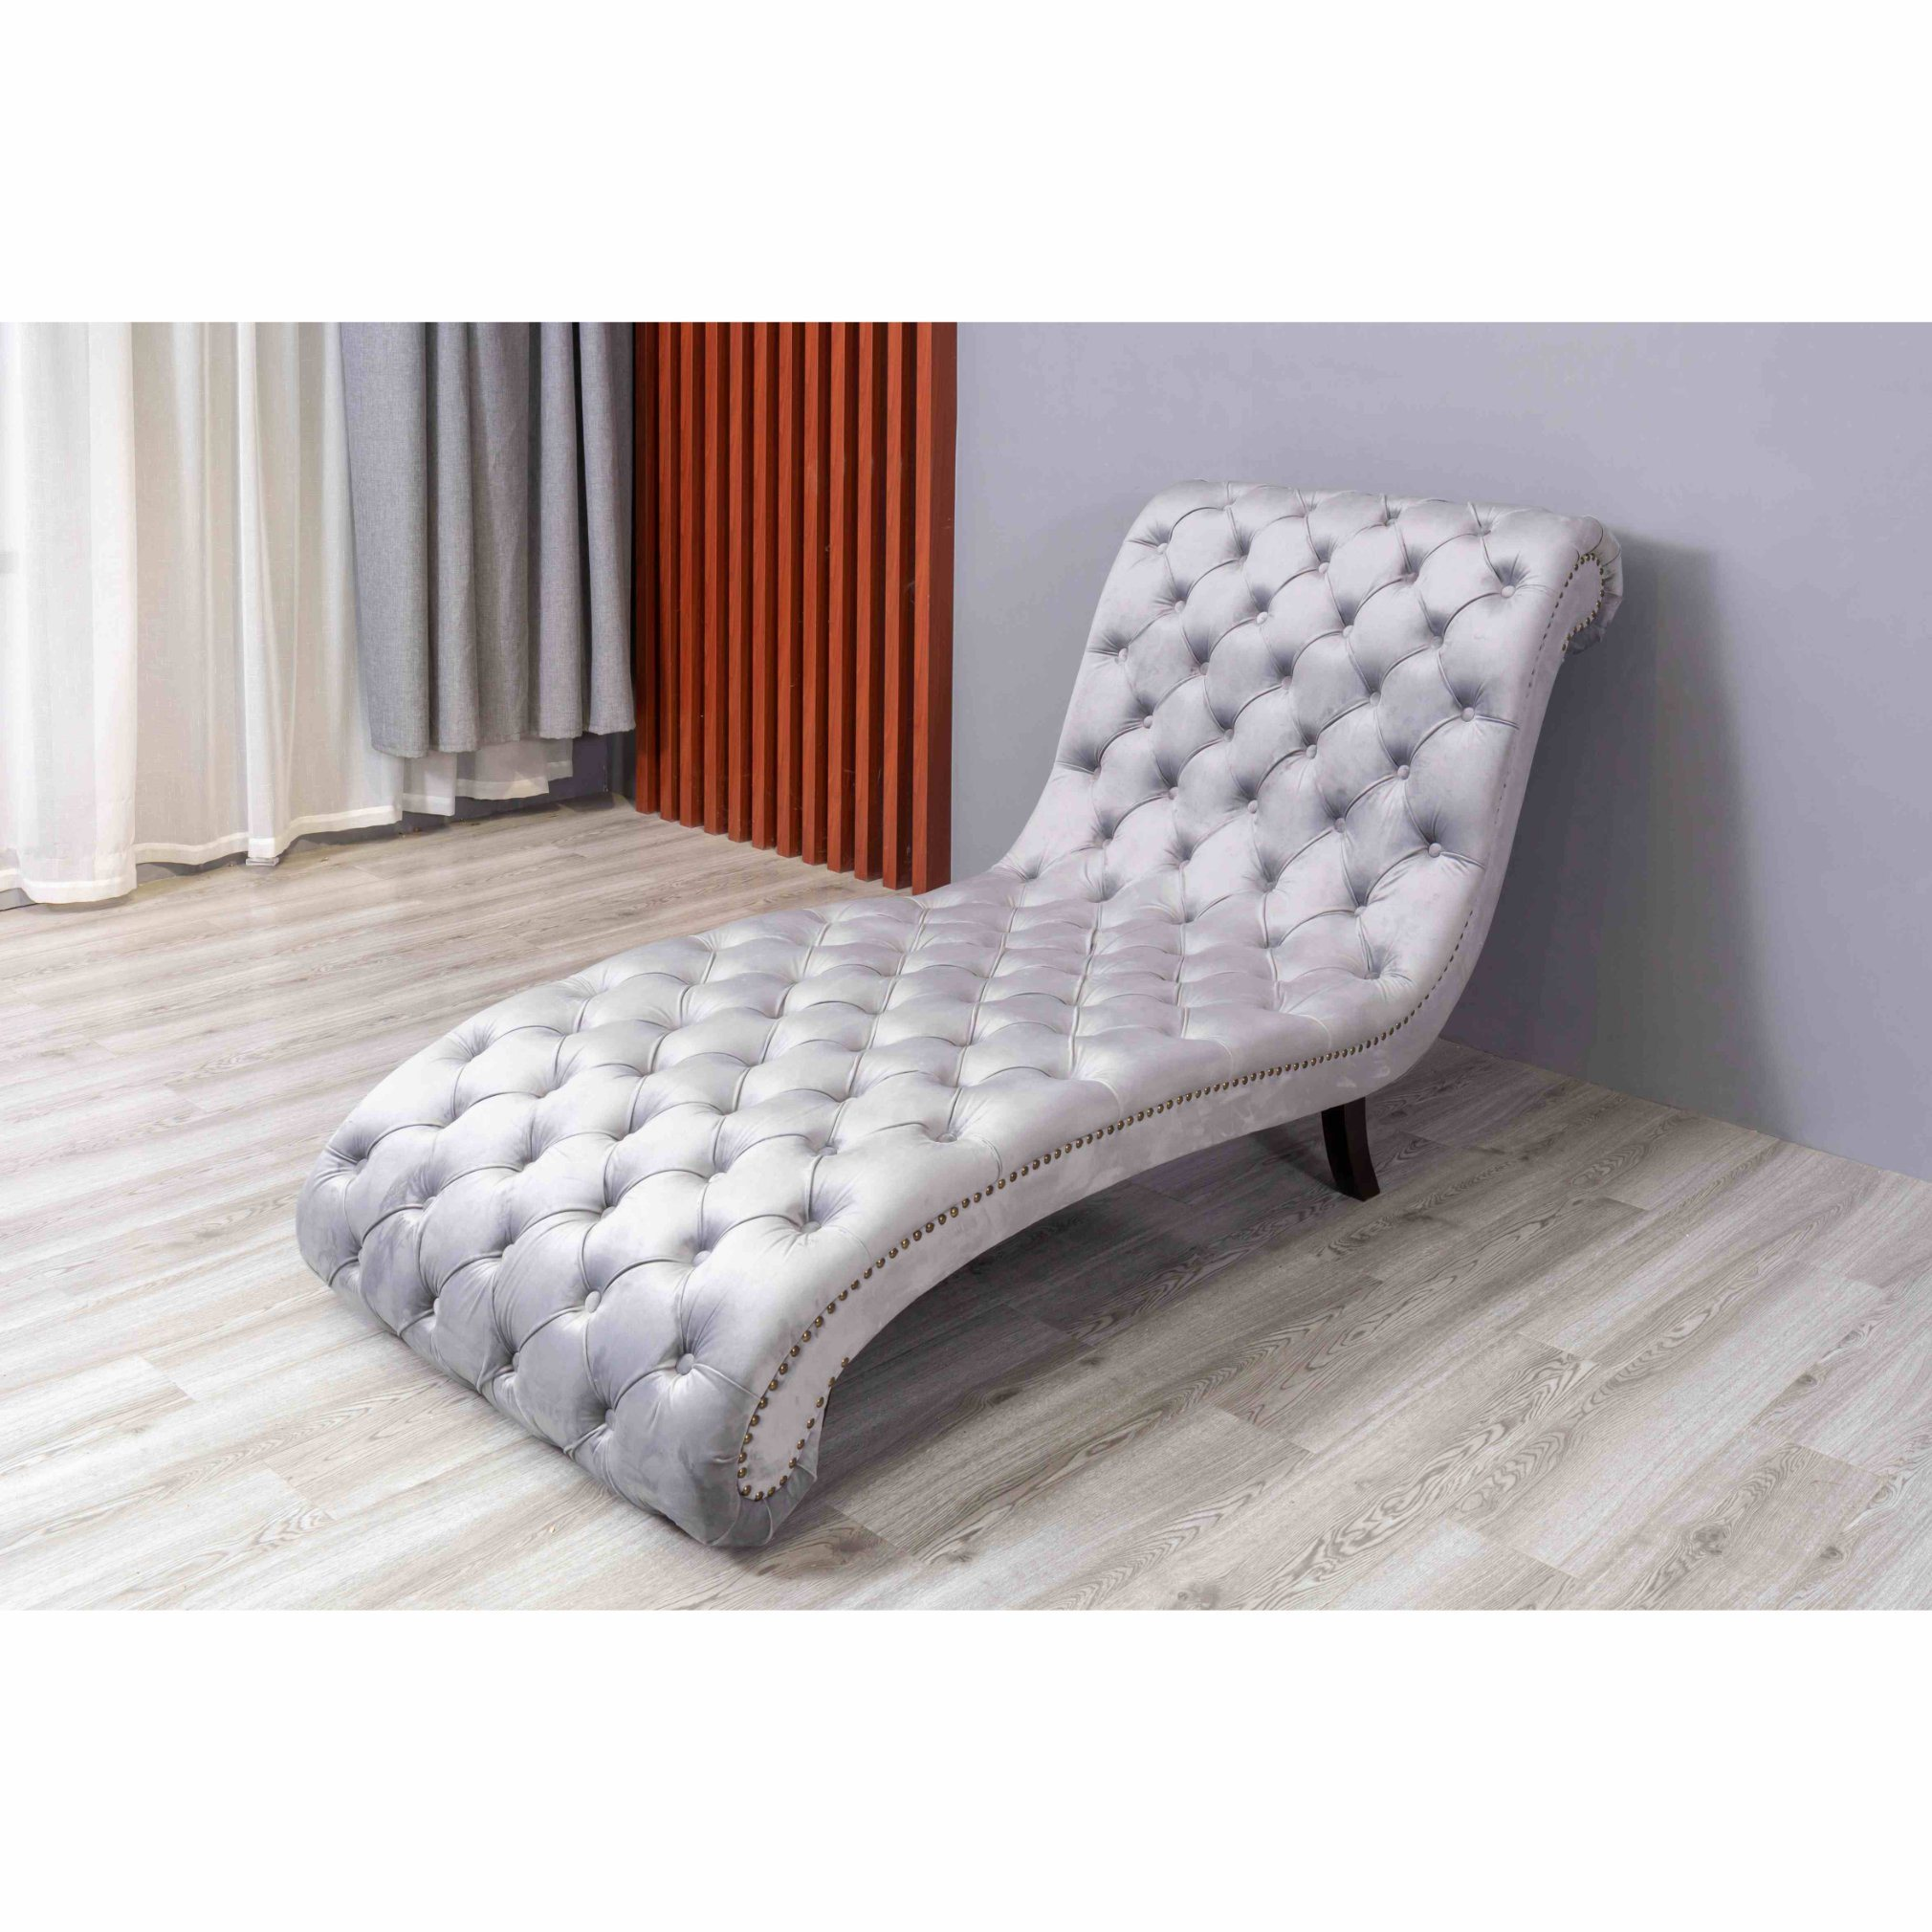 China Button Tufted Chaise Lounge Outdoor Chair Furniture Chair China Couch Living Room Sofa